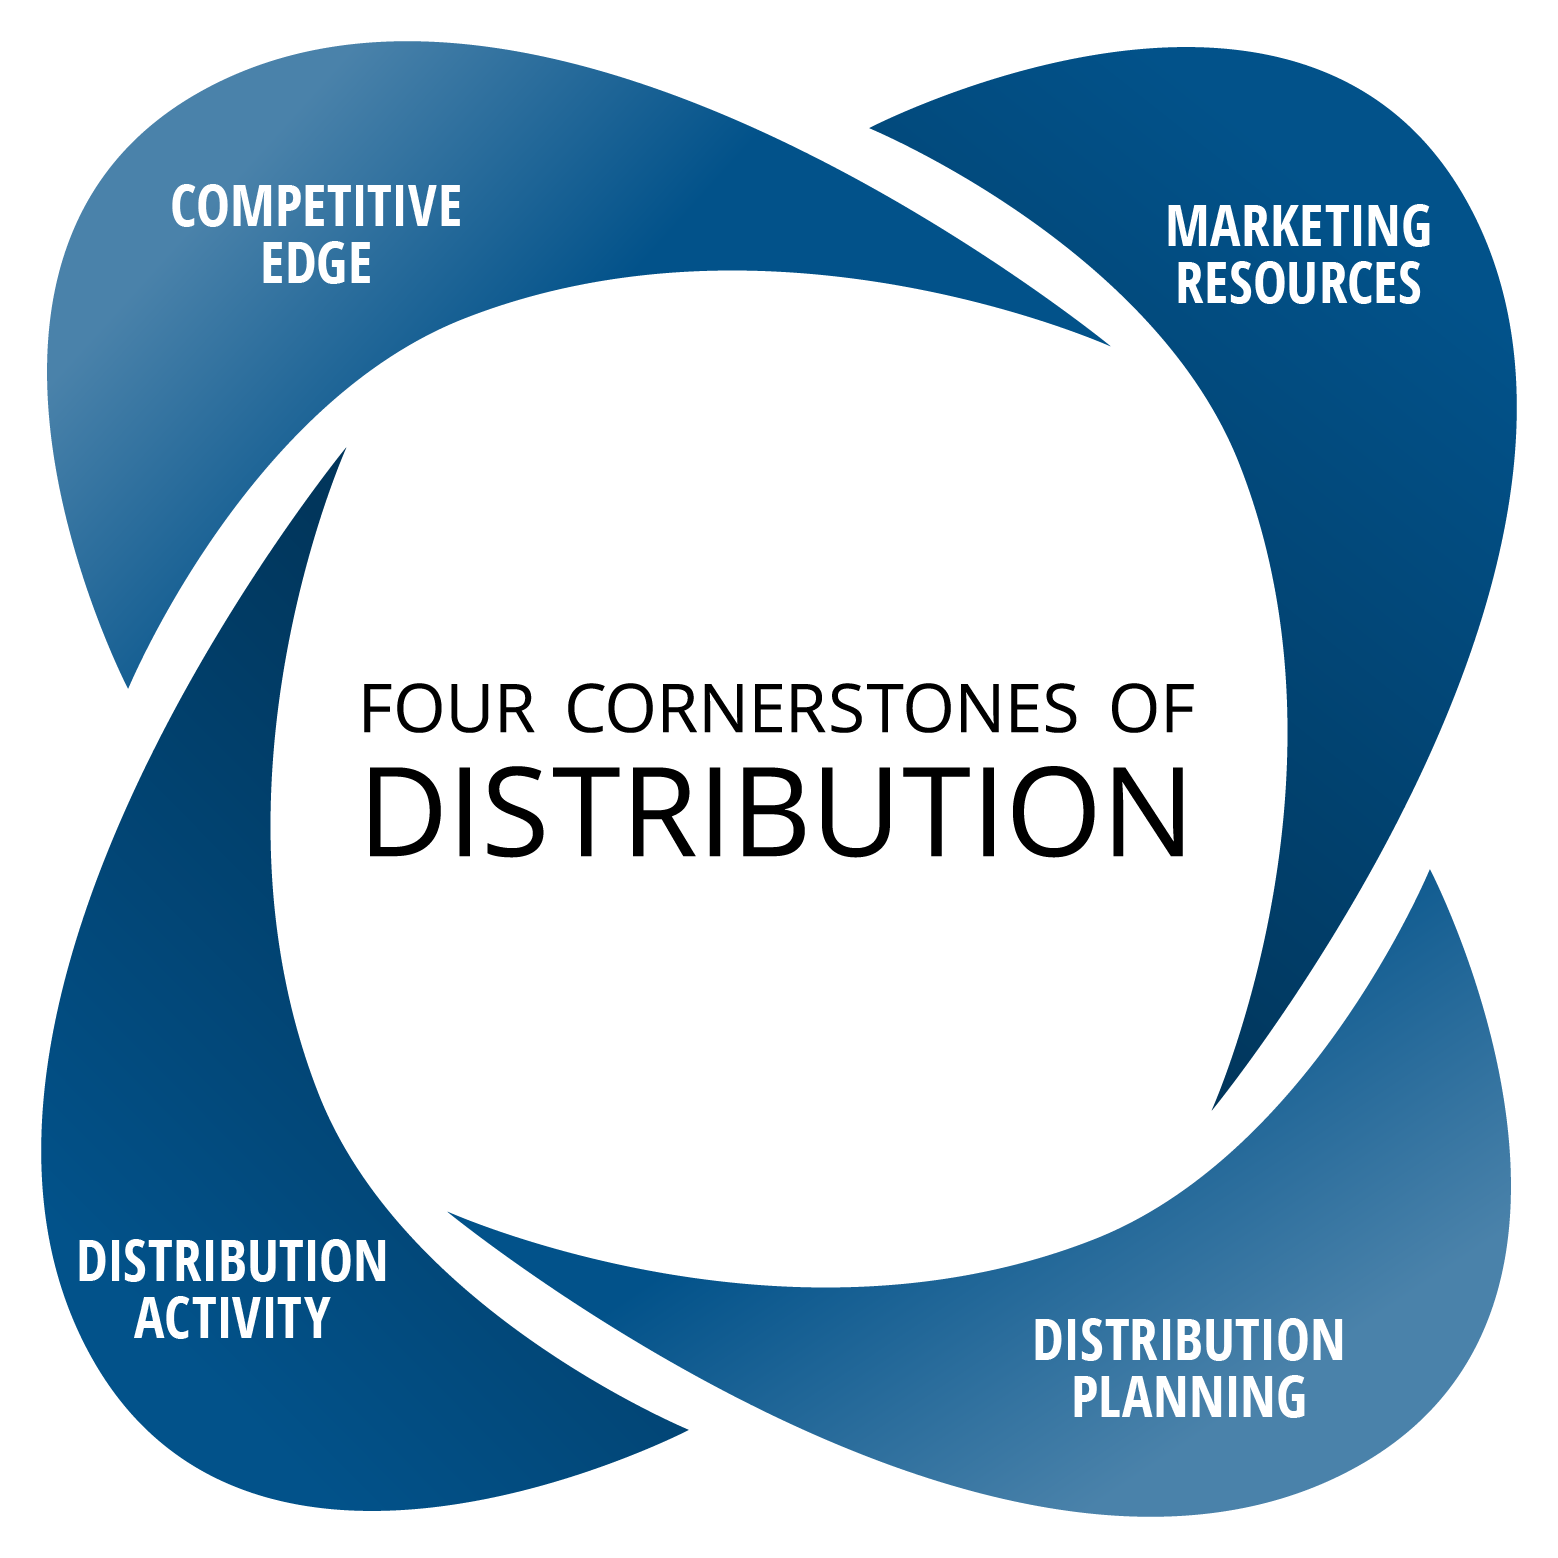 Four cornerstones of distribution: Competitive edge, marketing resources, partnership development, and distribution planning